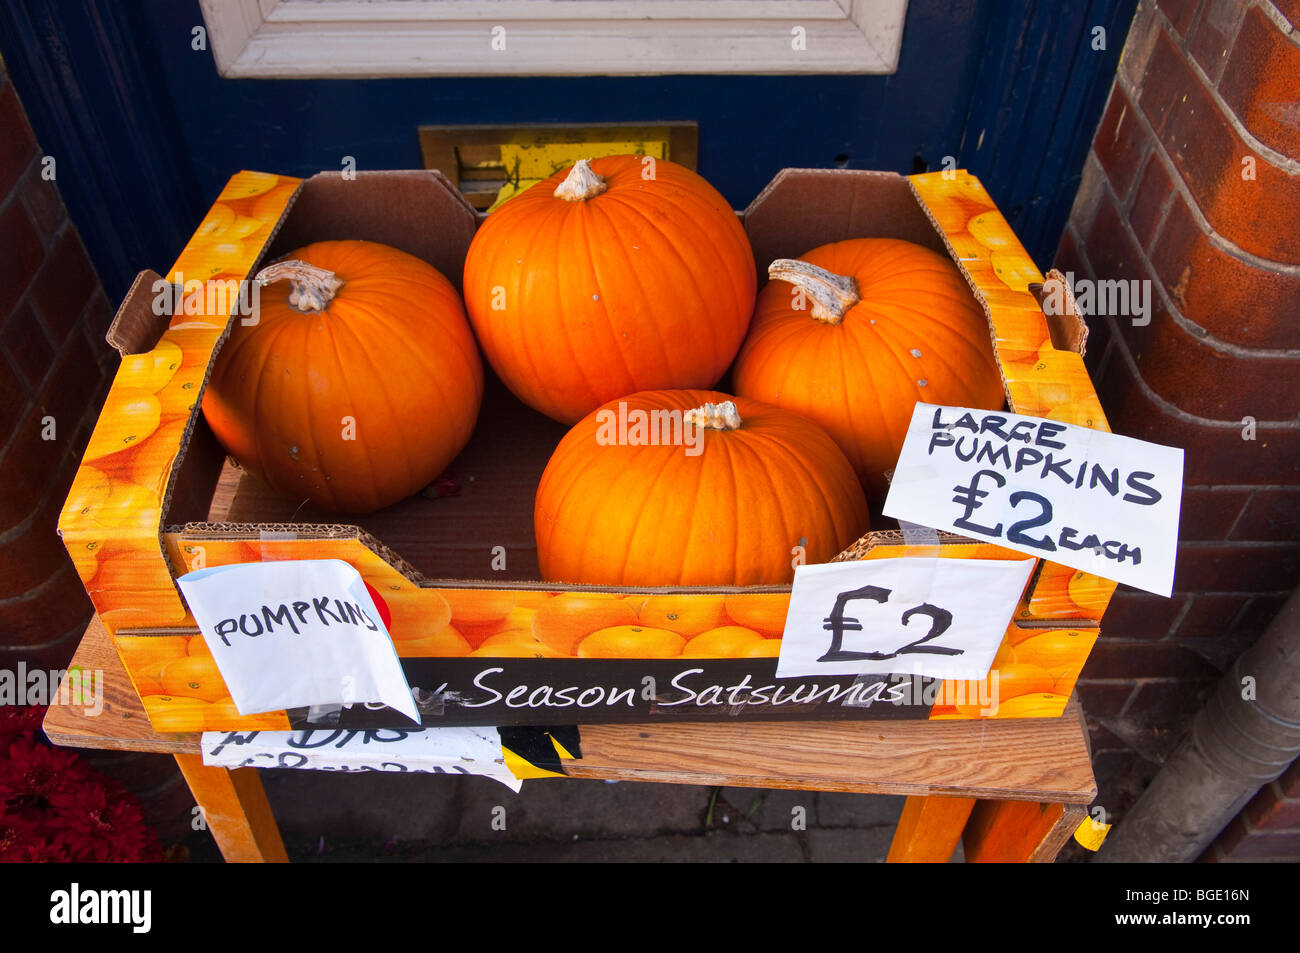 Pumpkins for sale in the Uk - Stock Image